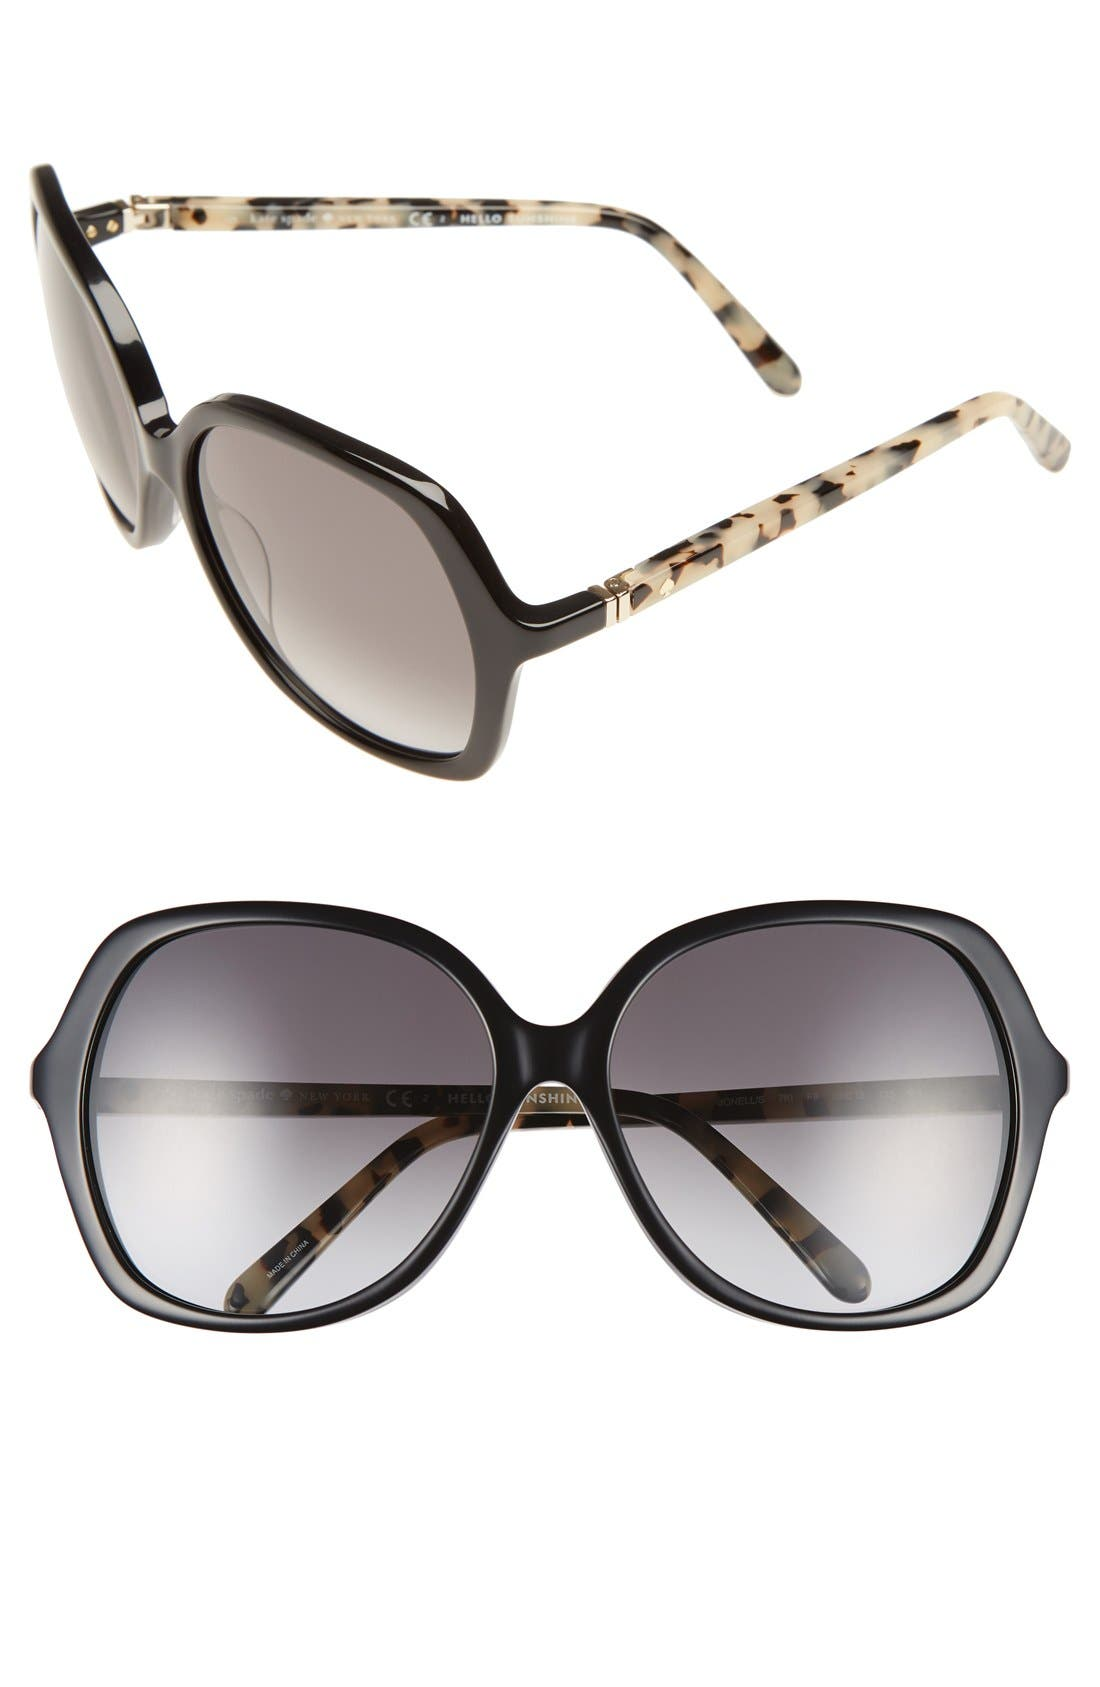 KATE SPADE NEW YORK,                             'jonell' 58mm oversized sunglasses,                             Main thumbnail 1, color,                             001